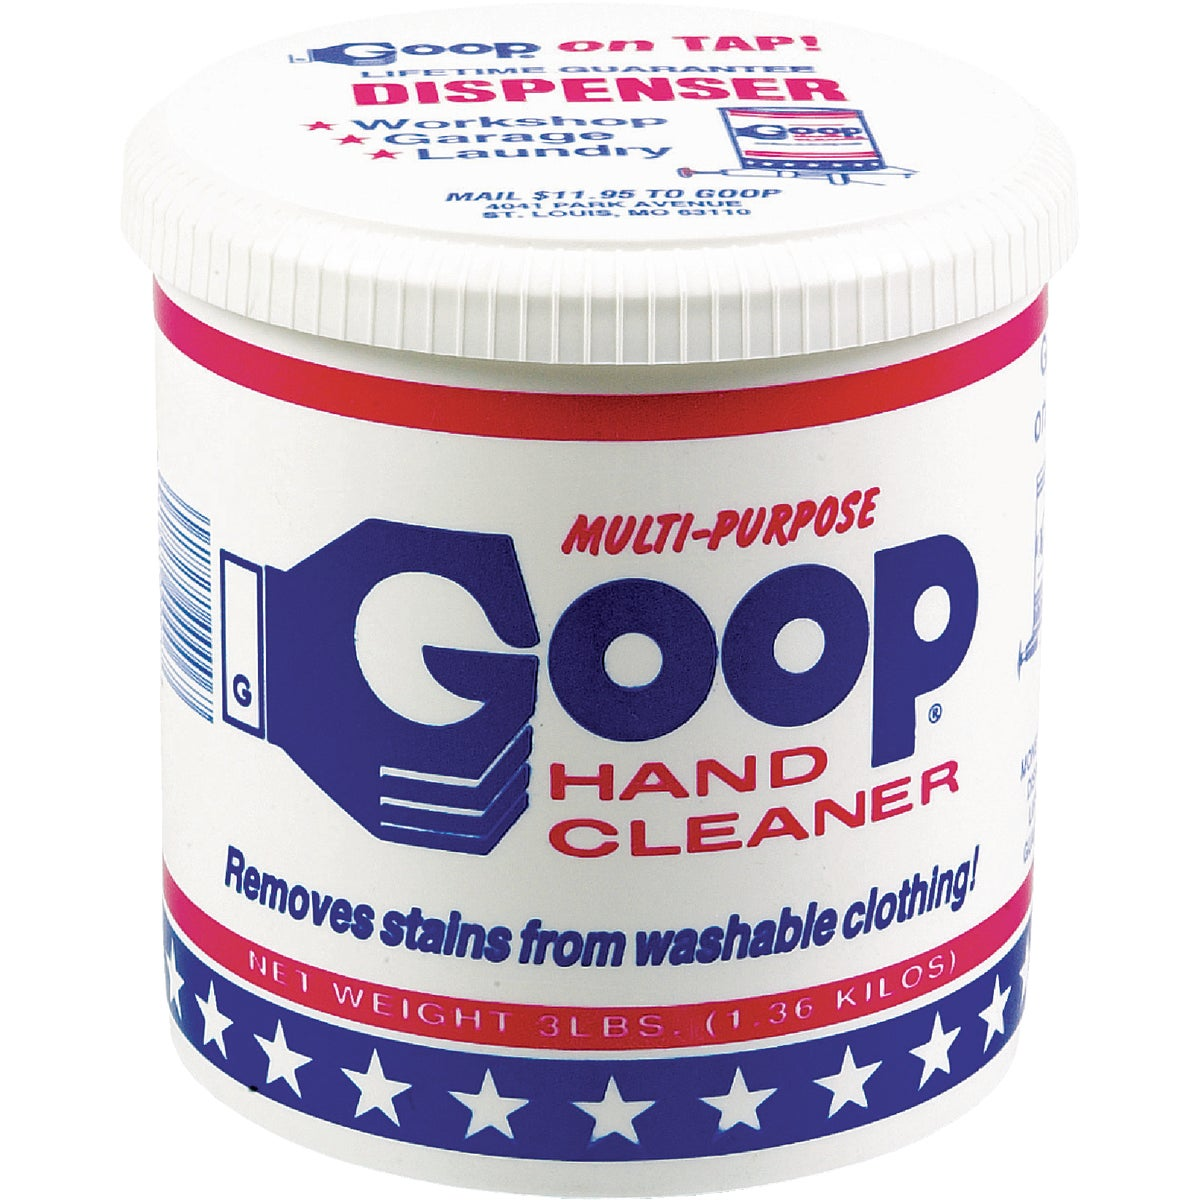 3LB HAND CLEANER